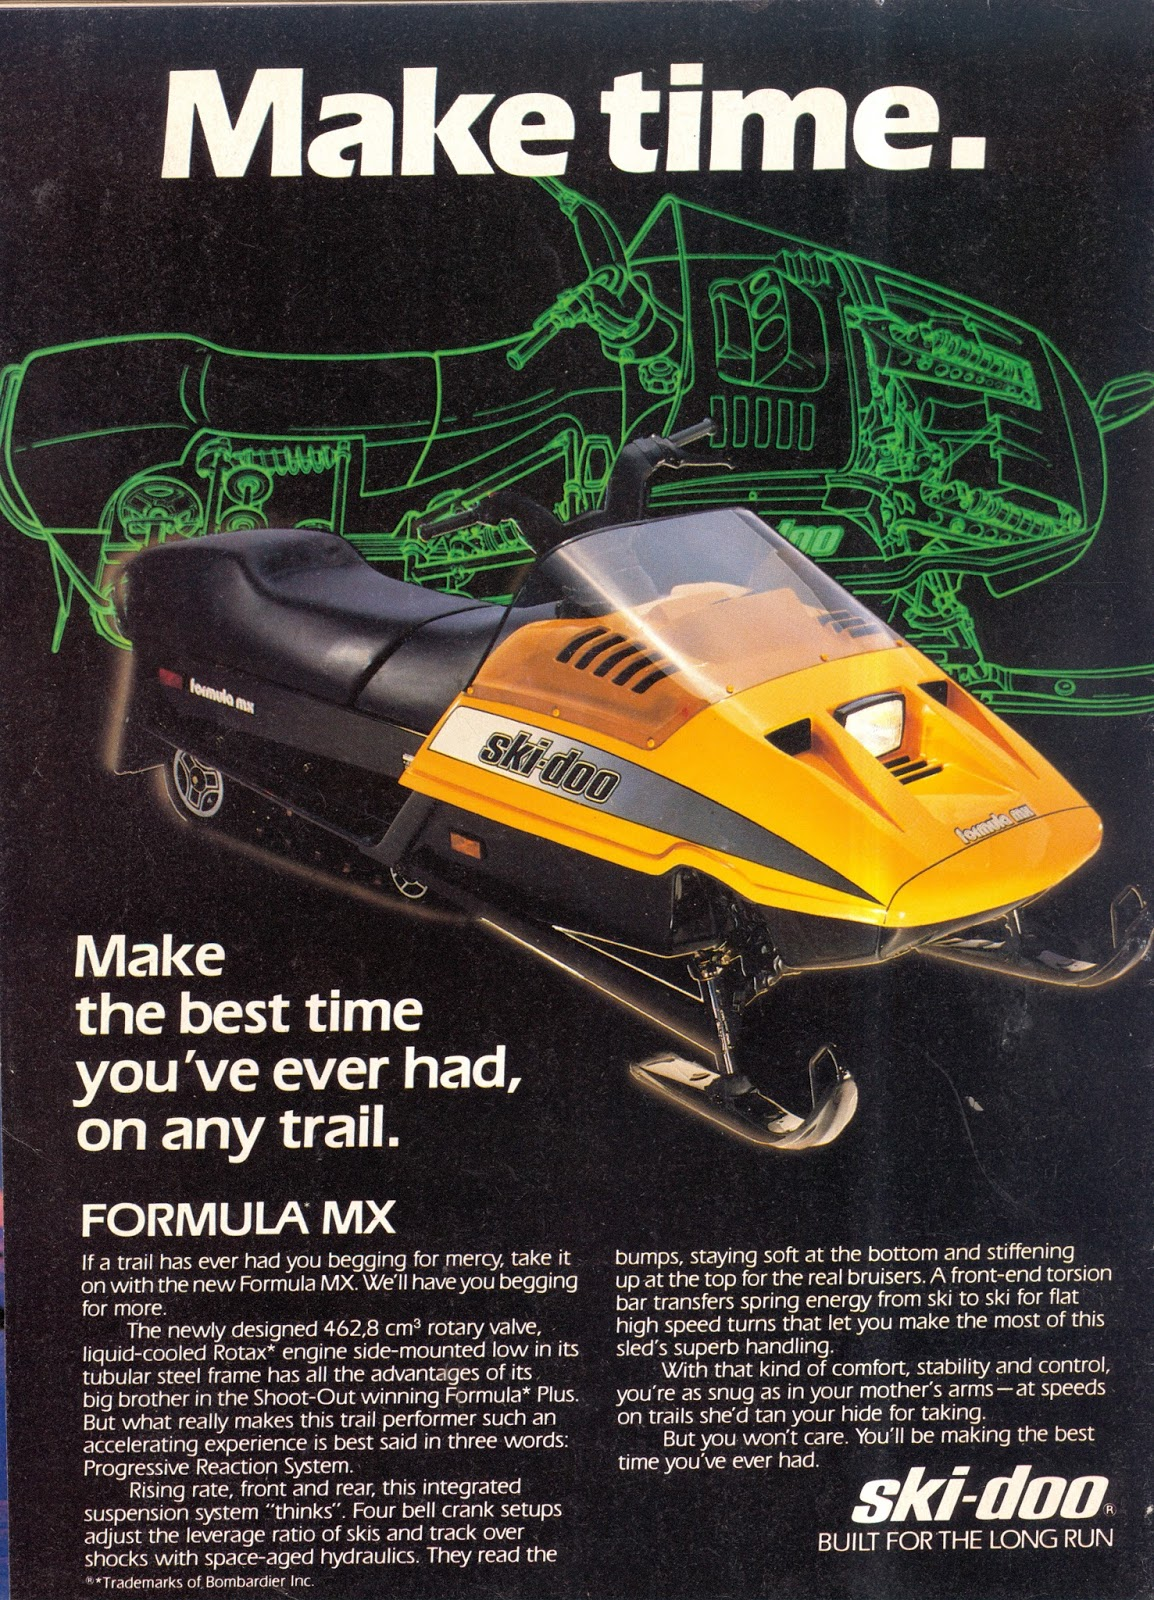 CLASSIC SNOWMOBILES OF THE PAST: 1985 SKI-DOO FORMULA MX